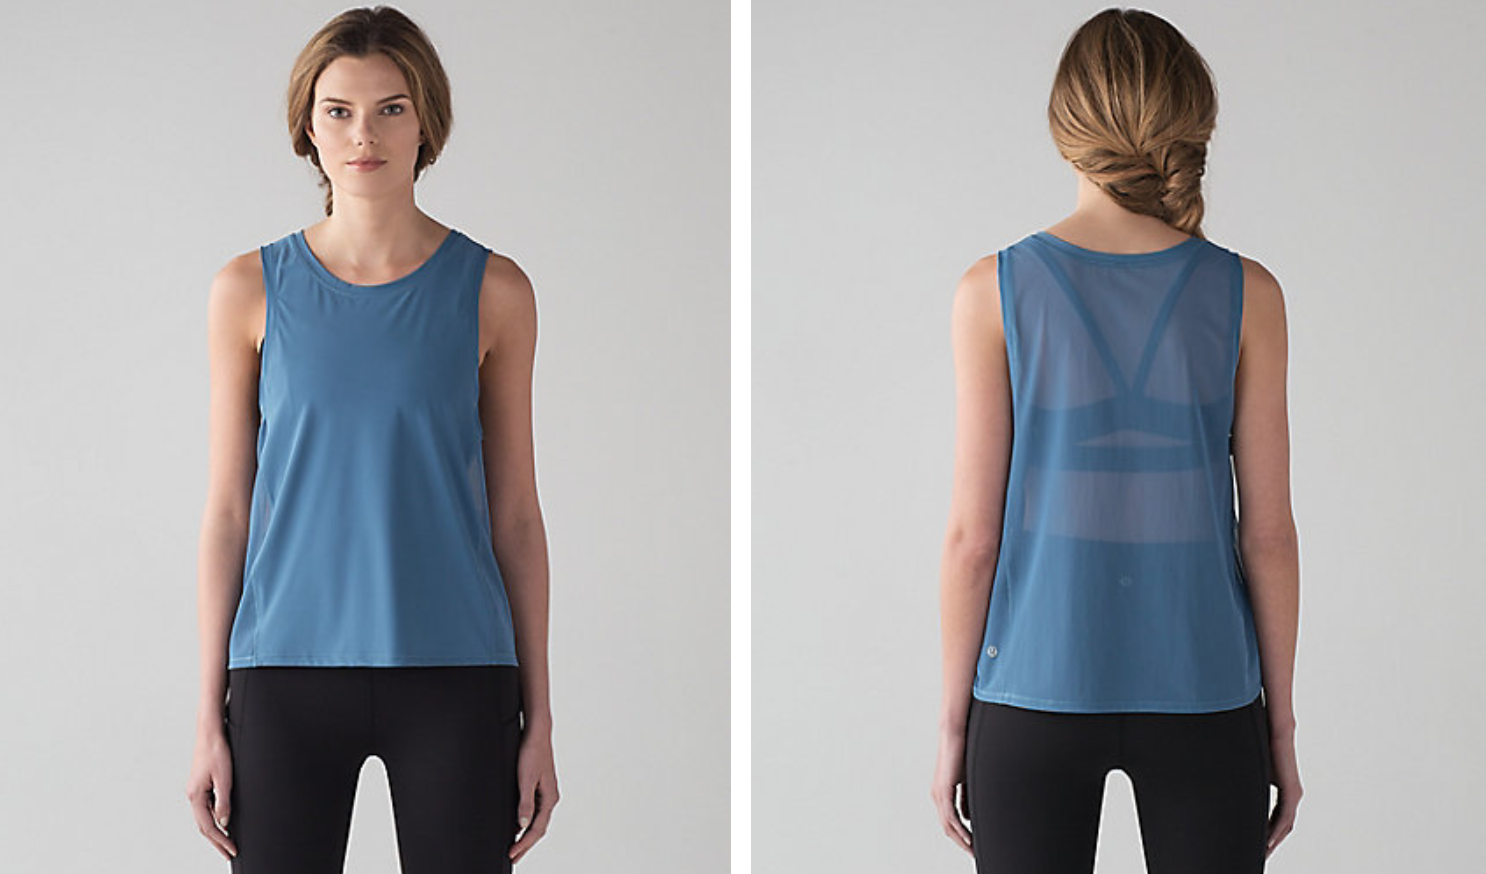 https://api.shopstyle.com/action/apiVisitRetailer?url=https%3A%2F%2Fshop.lululemon.com%2Fp%2Fwomen-tanks%2FSole-Training-Tank%2F_%2Fprod8431303&site=www.shopstyle.ca&pid=uid6784-25288972-7